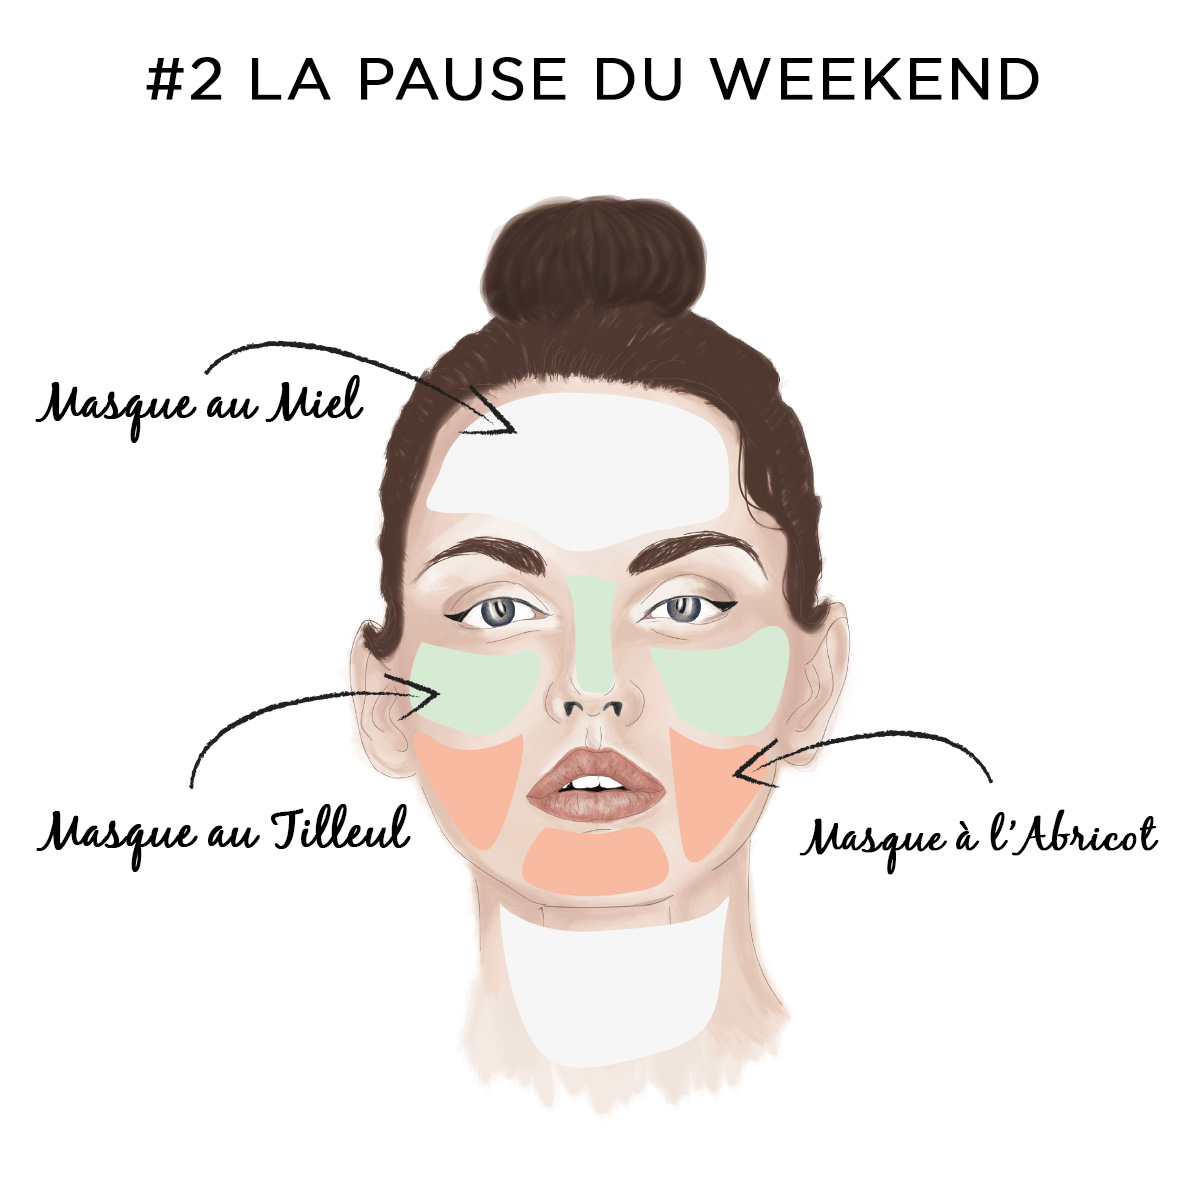 astuce multi-masking pour une pause cocooning